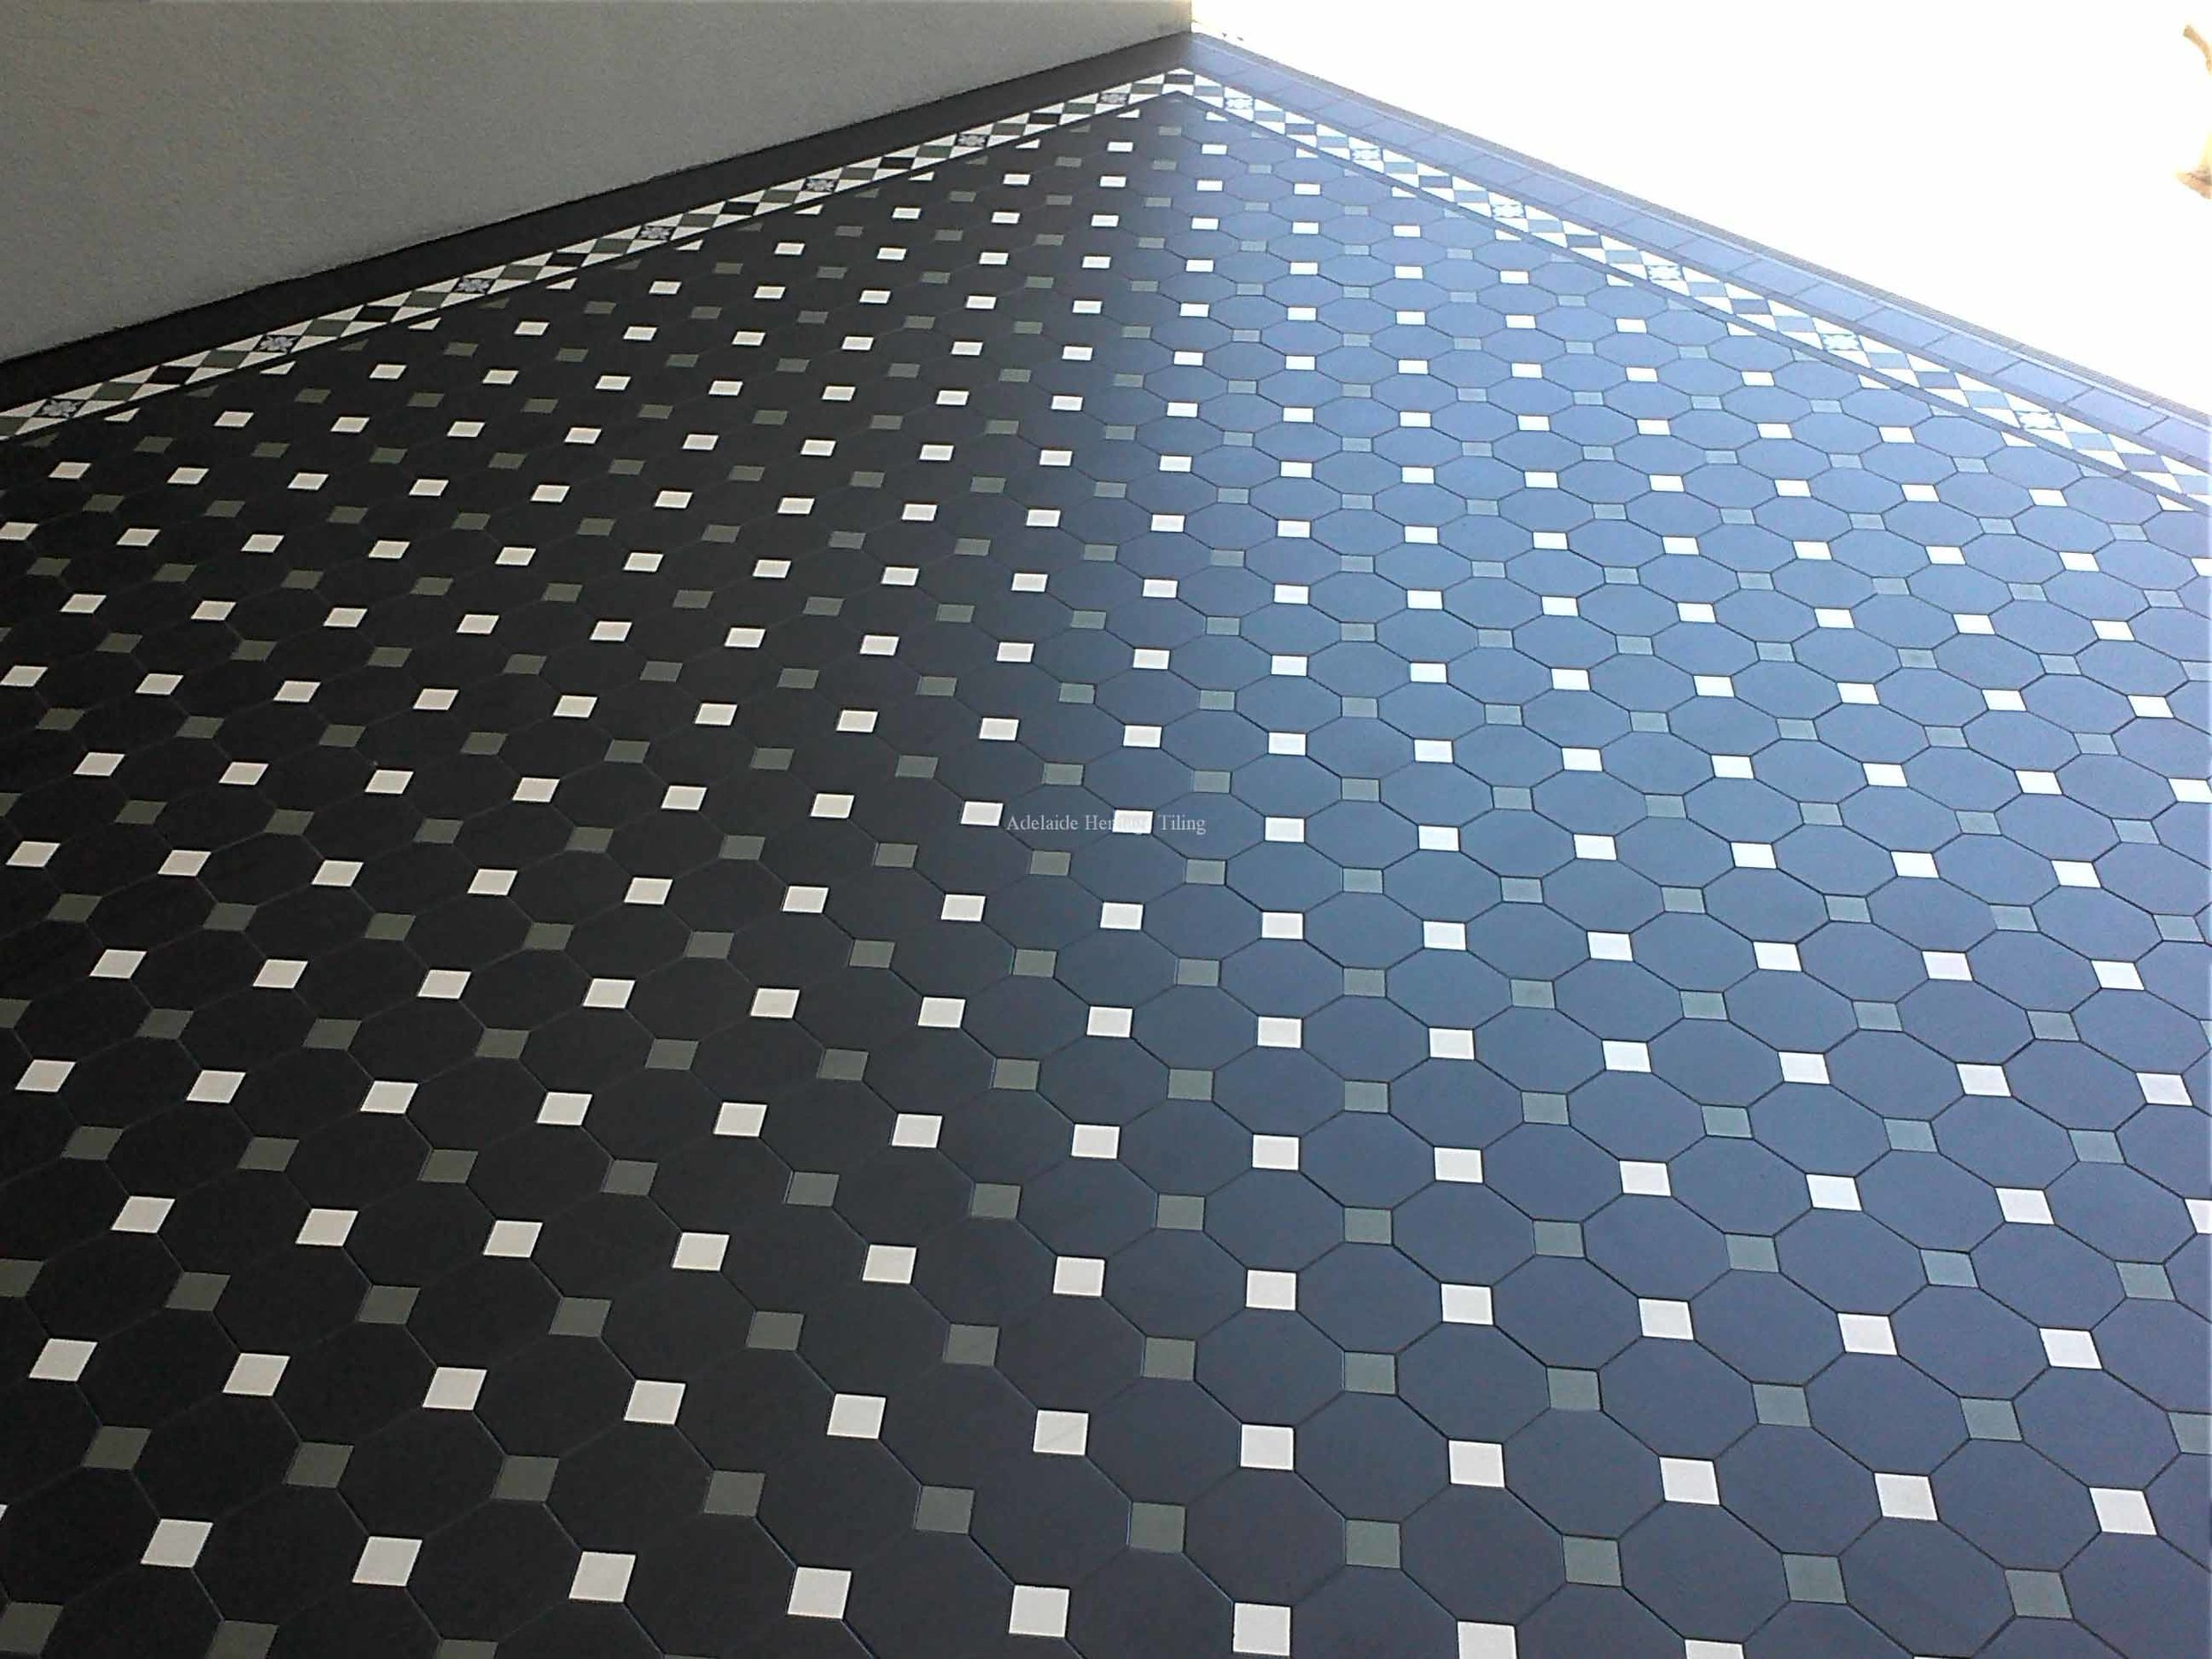 Black Octagons with alternating grey and oatmeal squares